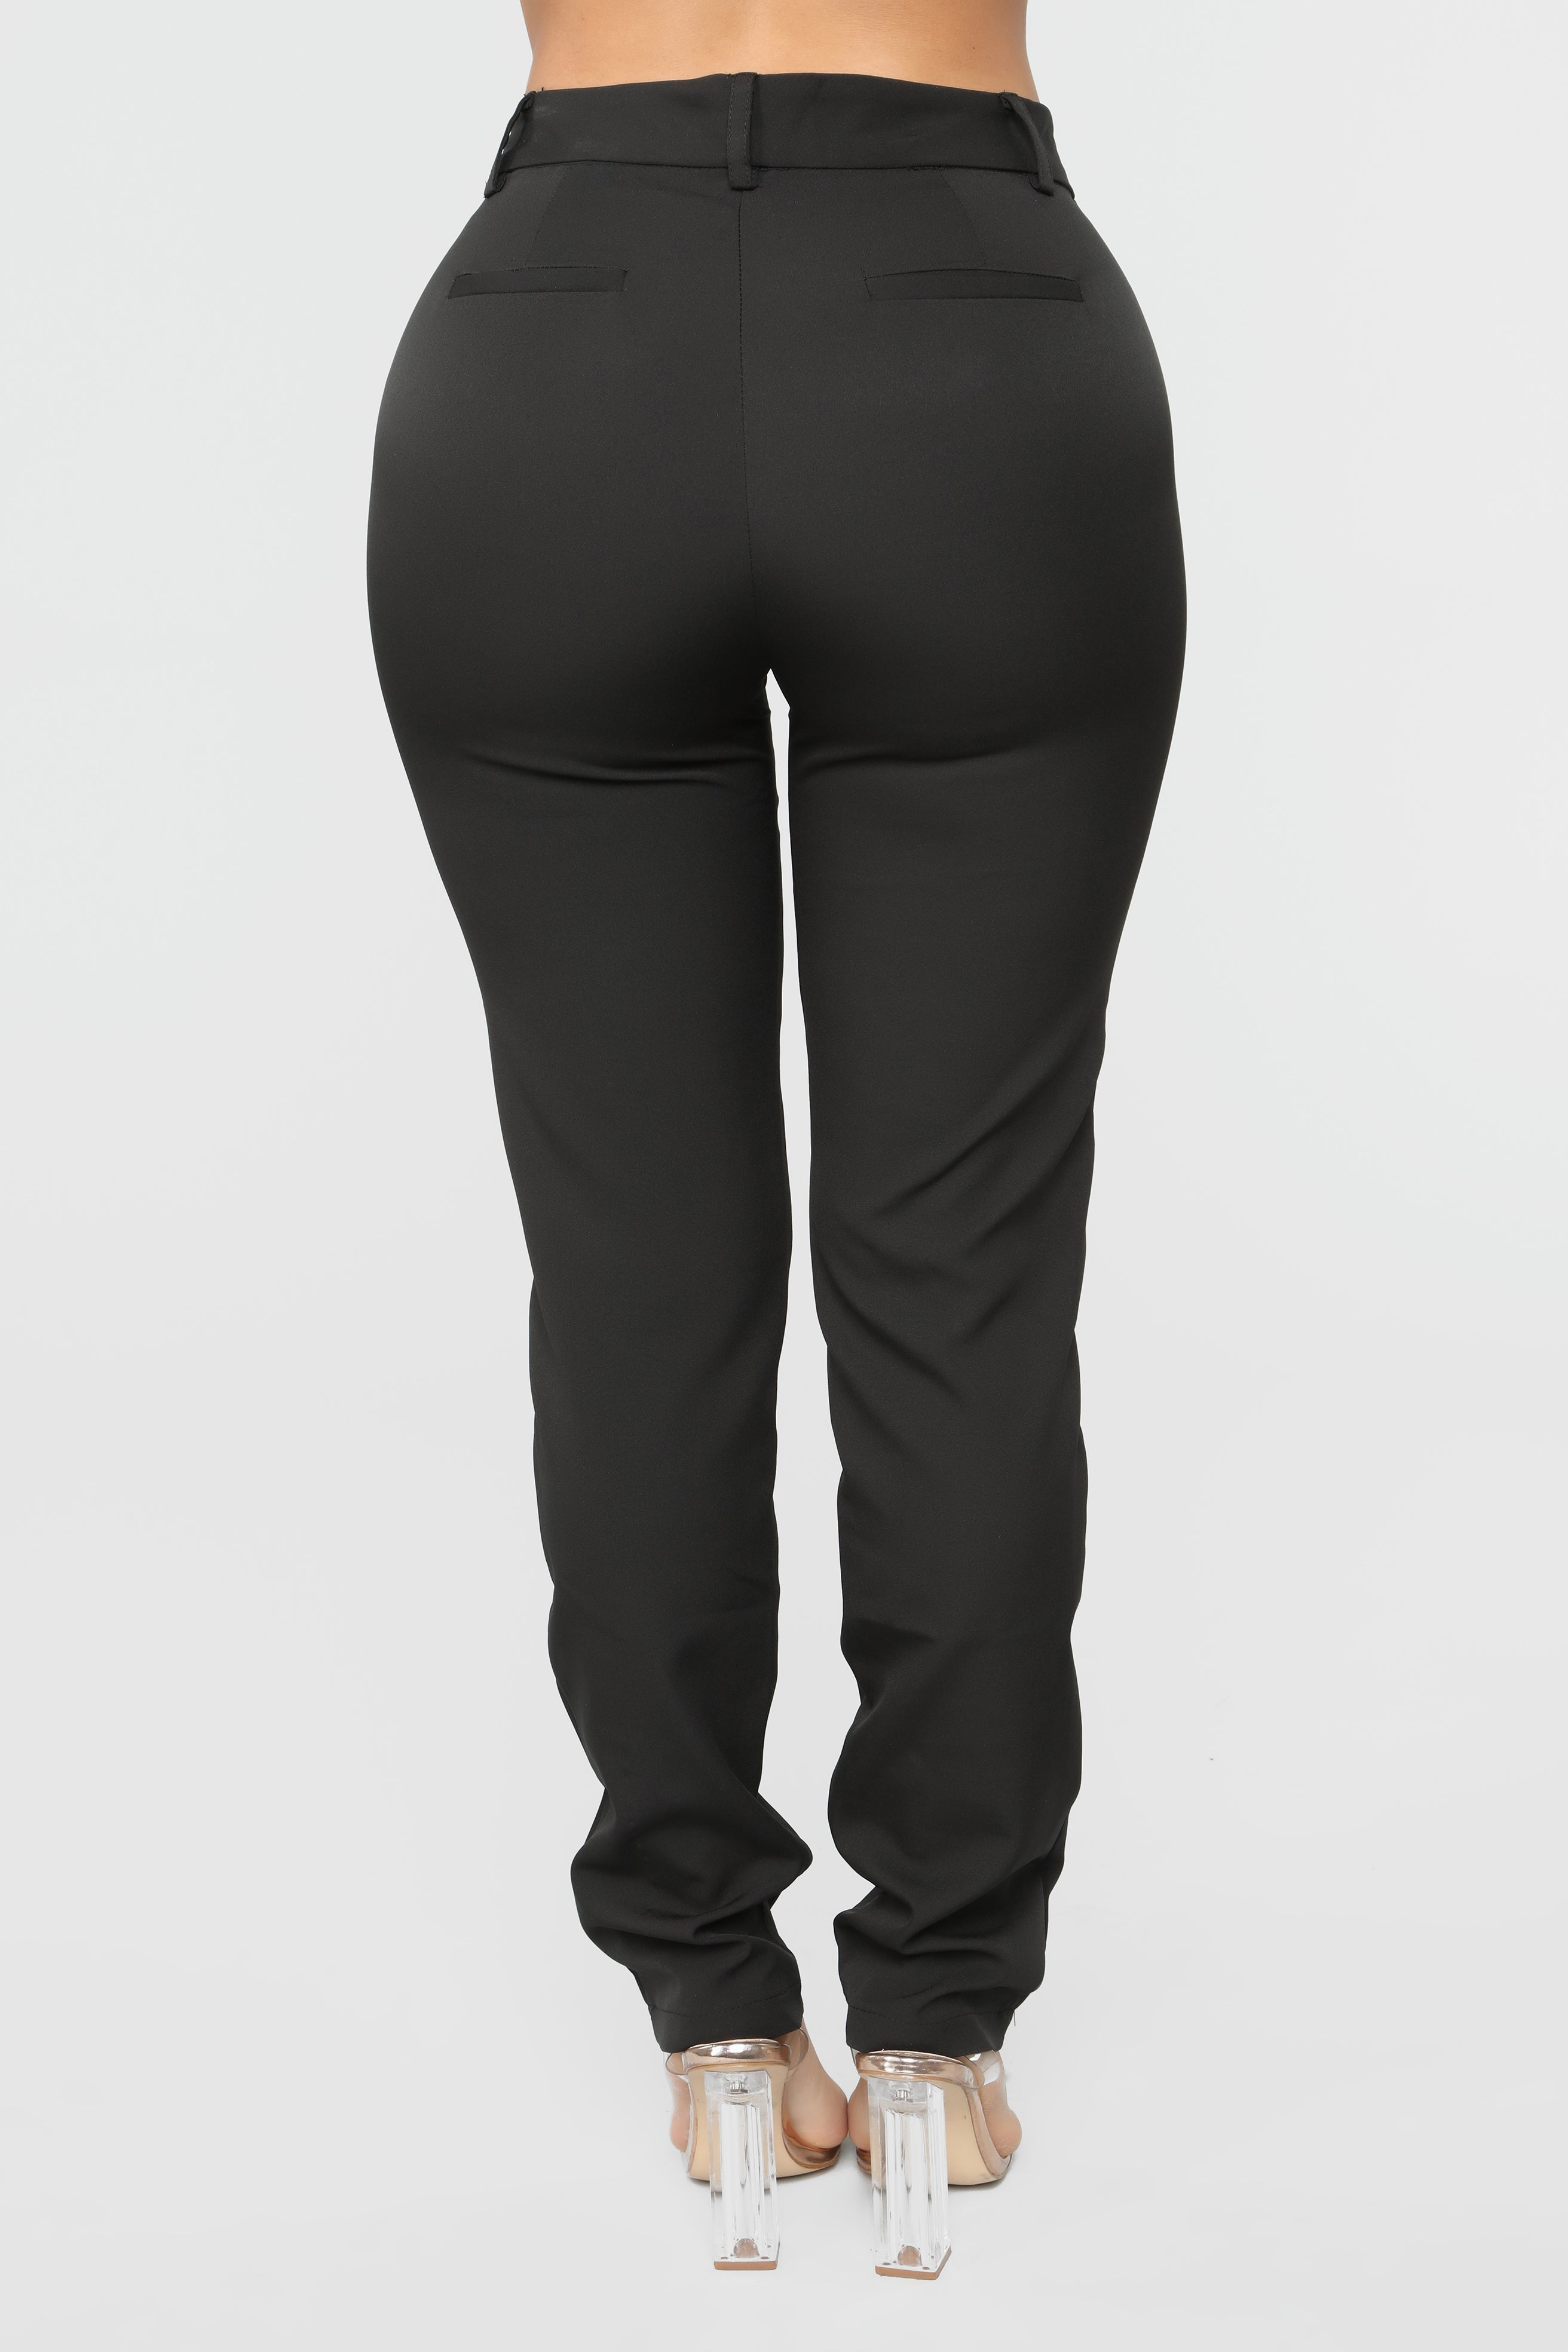 d9e1ab4bca Too Fly For The Office Suit Set - Black